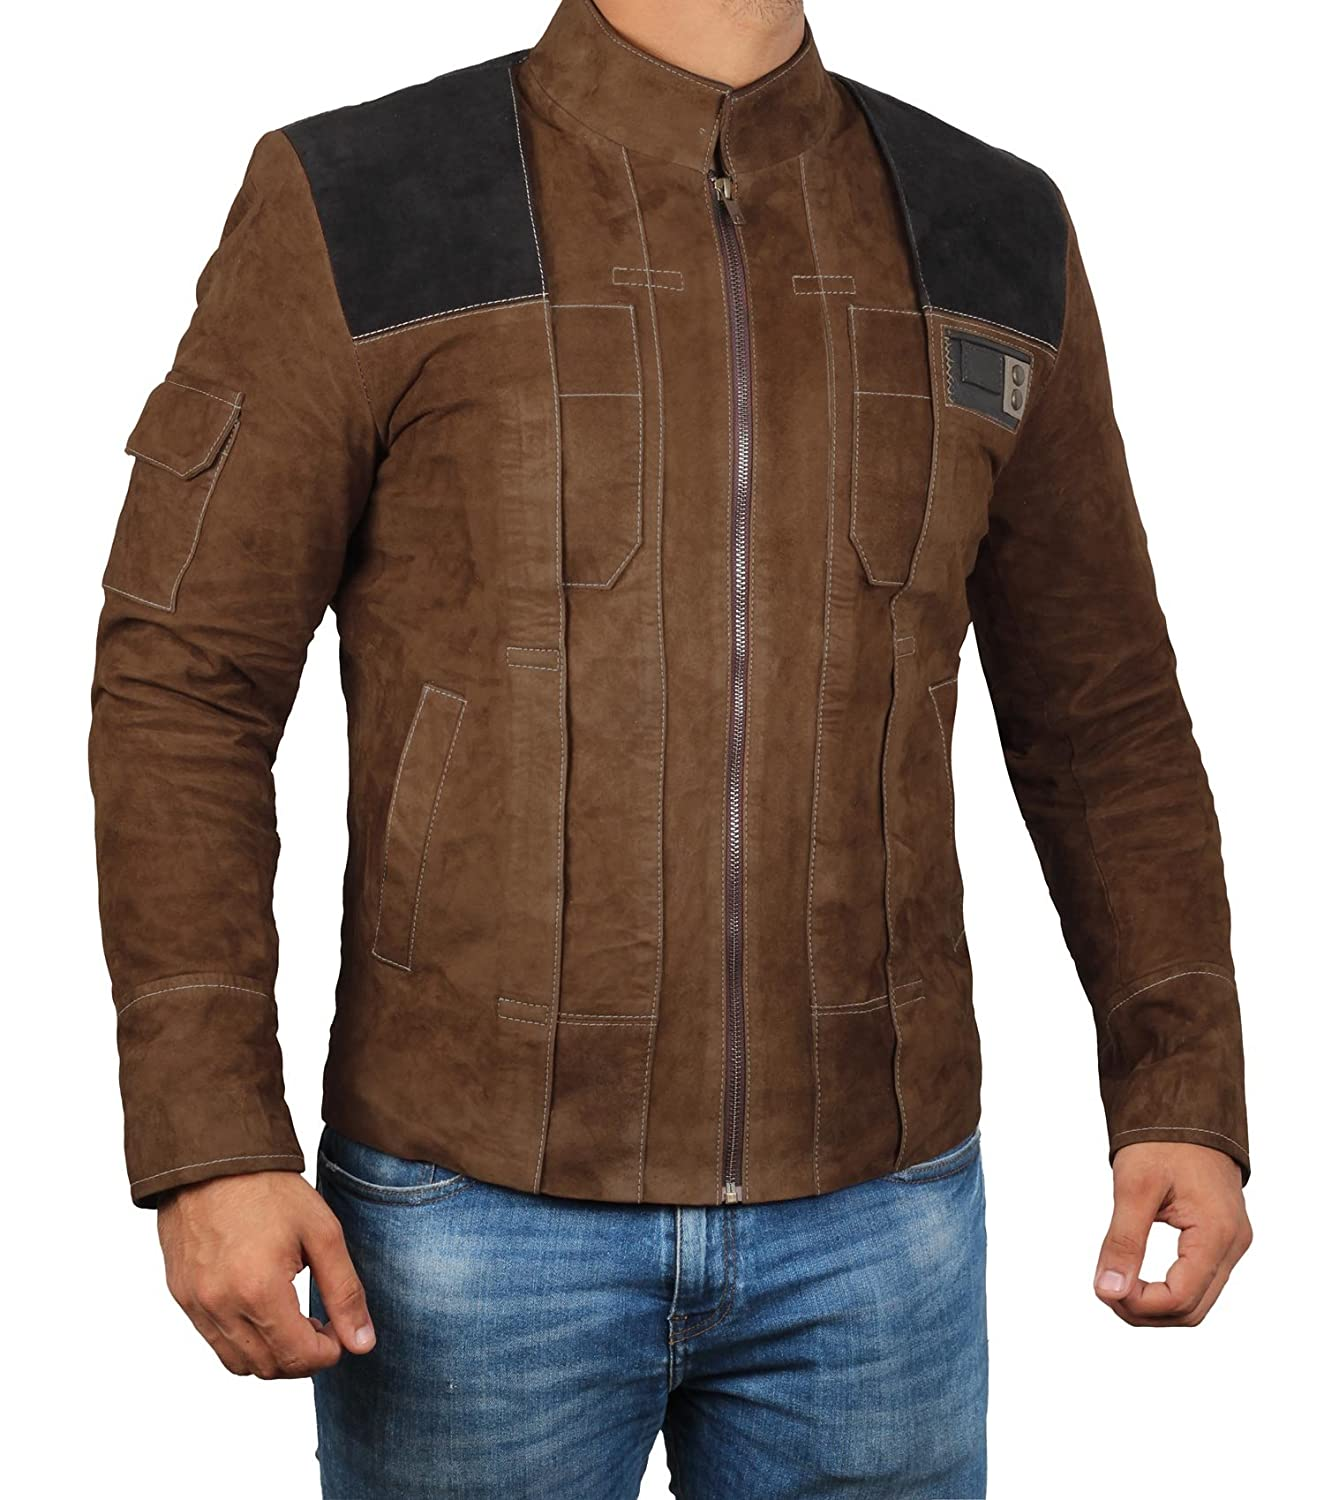 Decrum Suede Leather Jacket Men Brown Leather Jackets For Men At